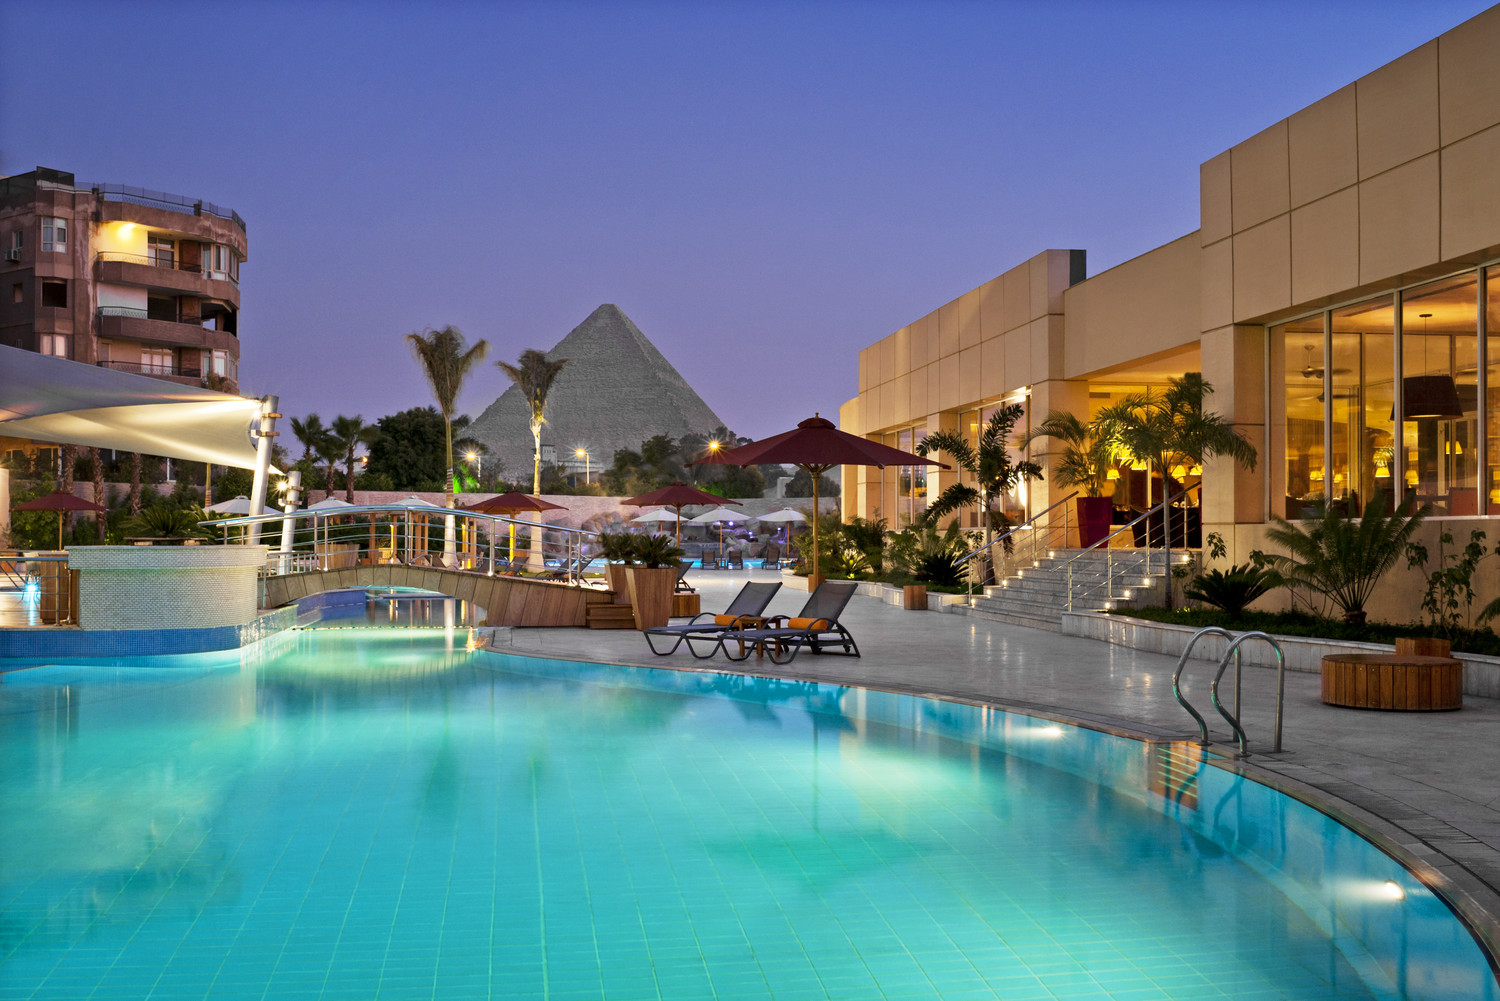 The Oasis Hotel Pyramids image1